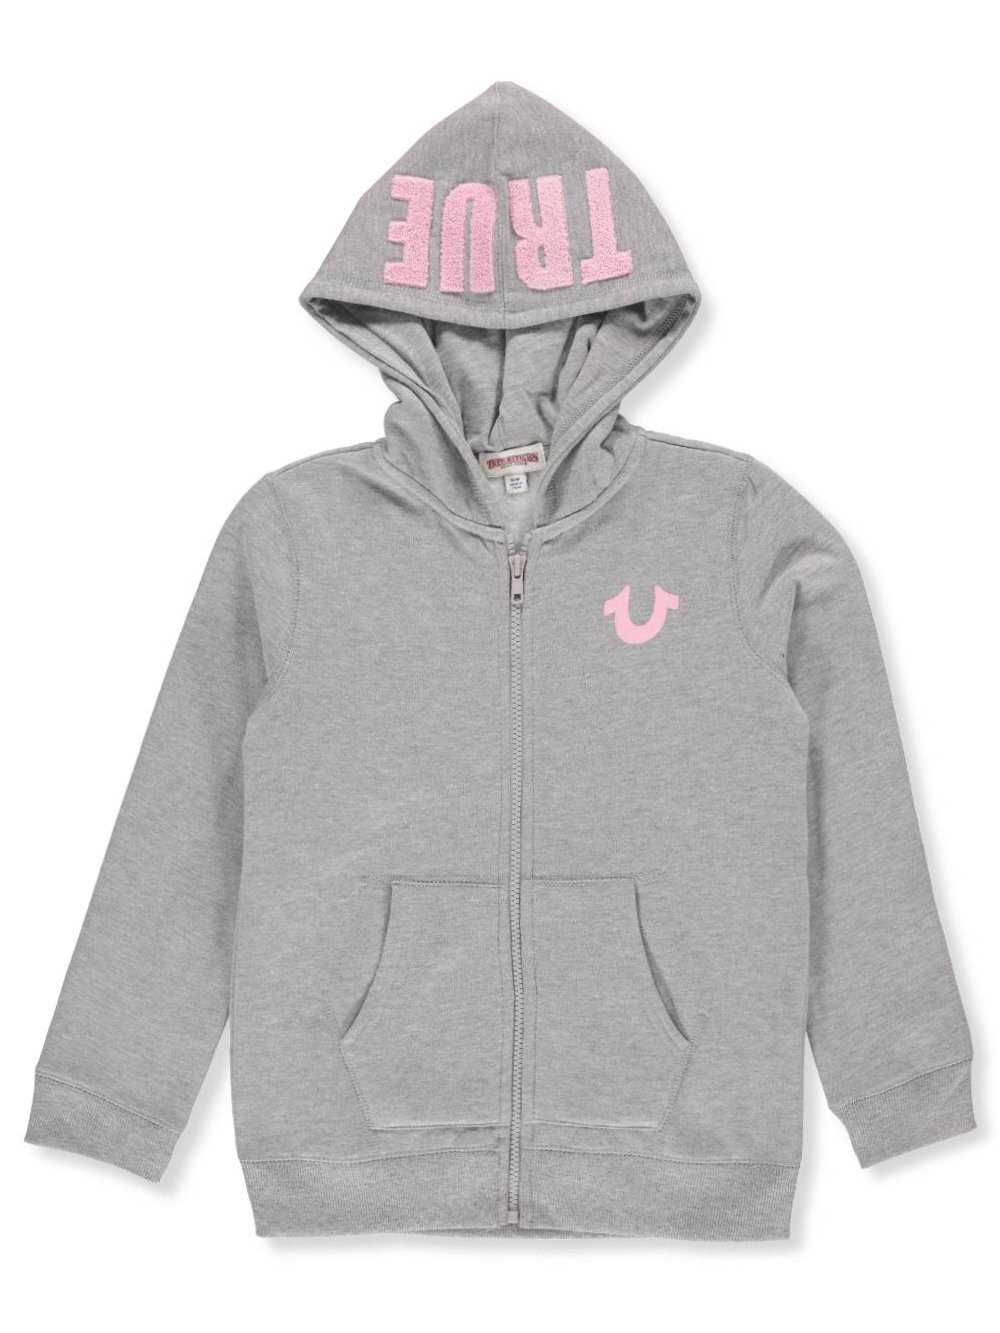 True Religion Girls' Fleece Hoodie